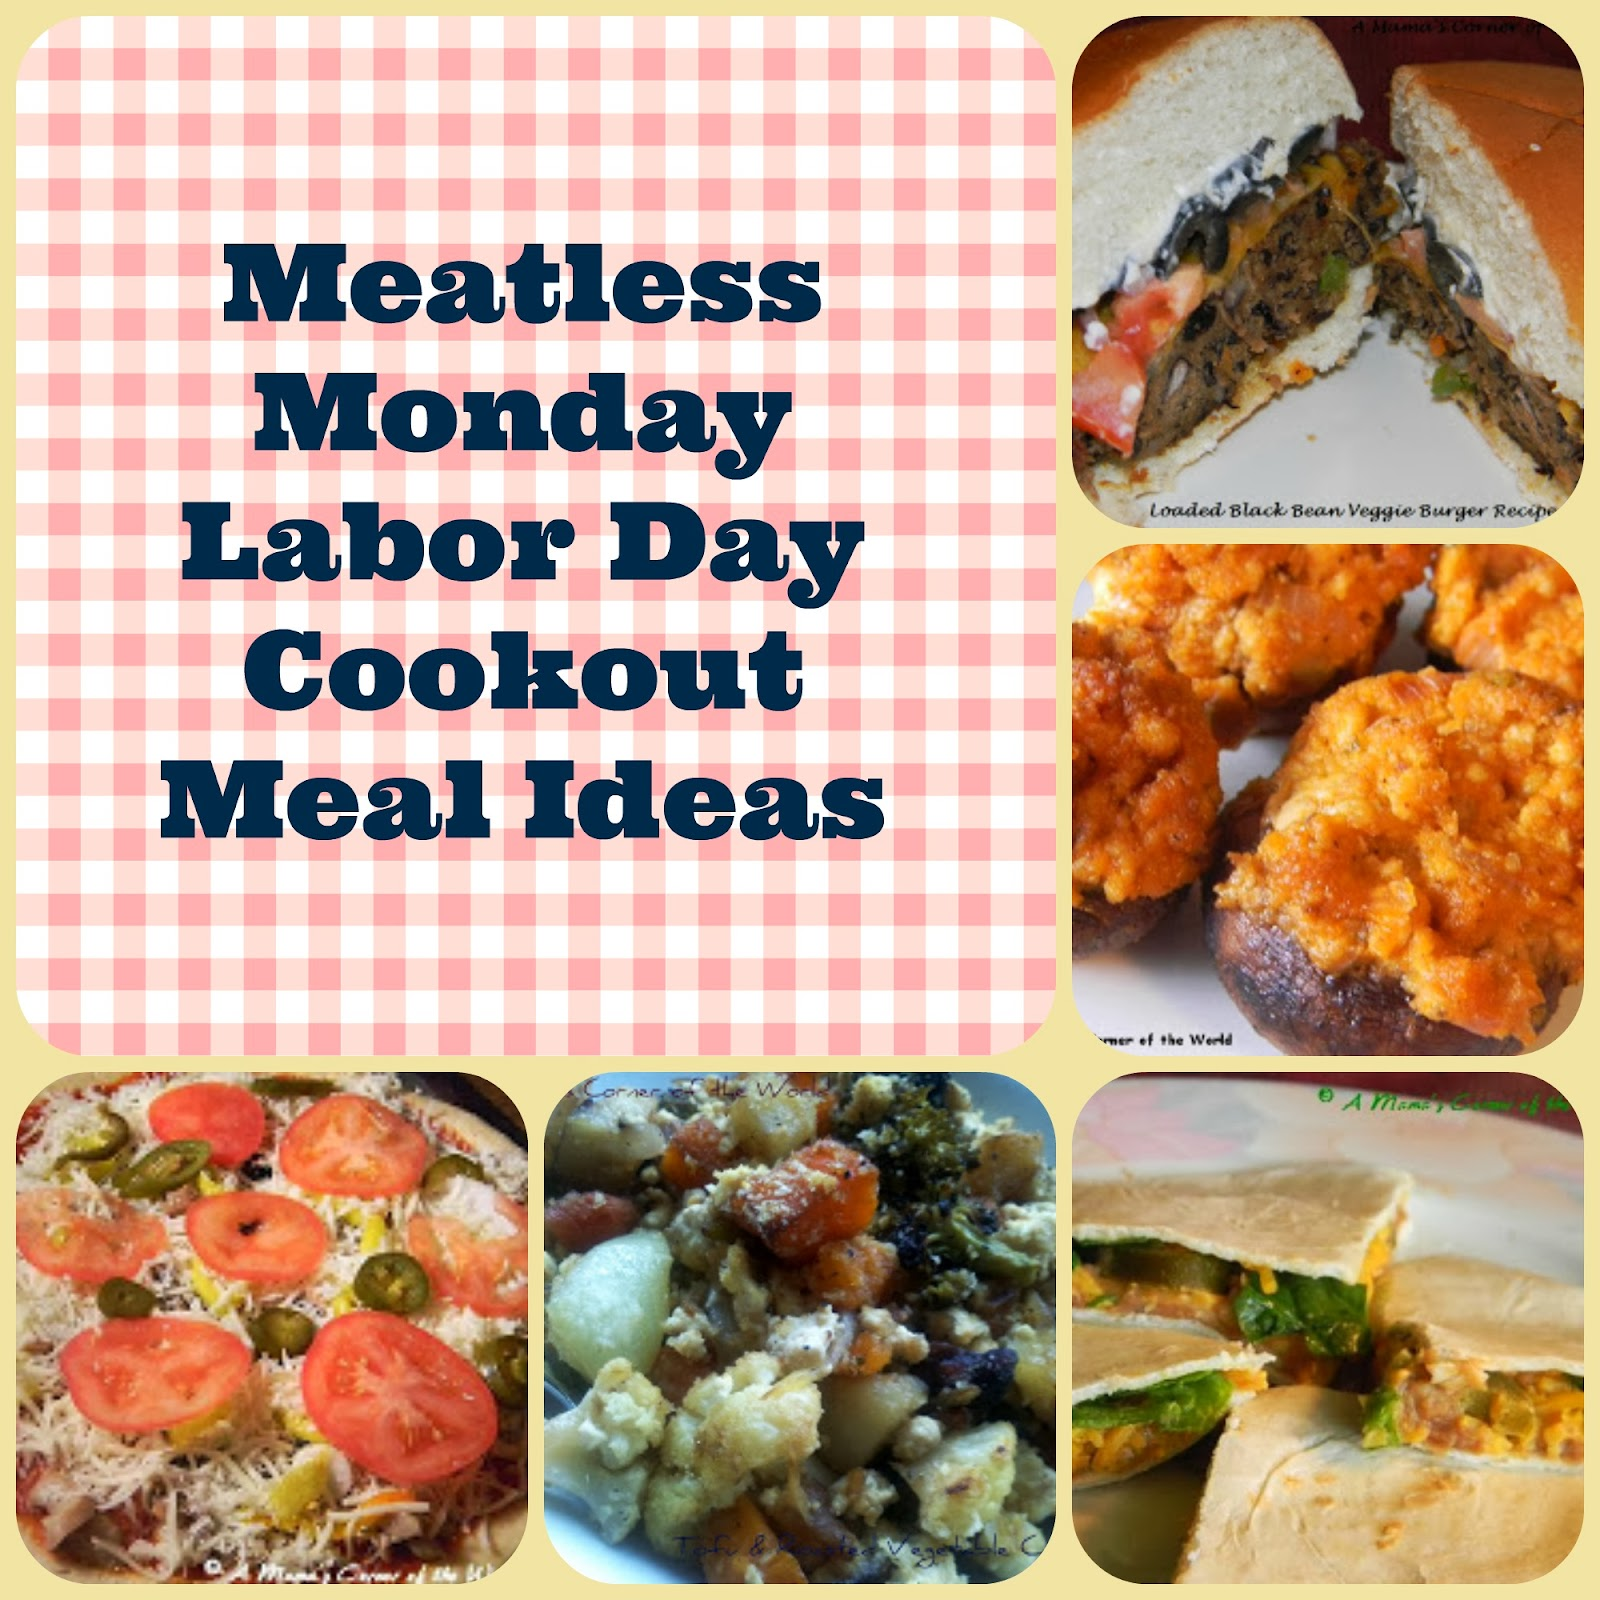 meatless monday labor day cookout recipe ideas ~ a mama's corner of